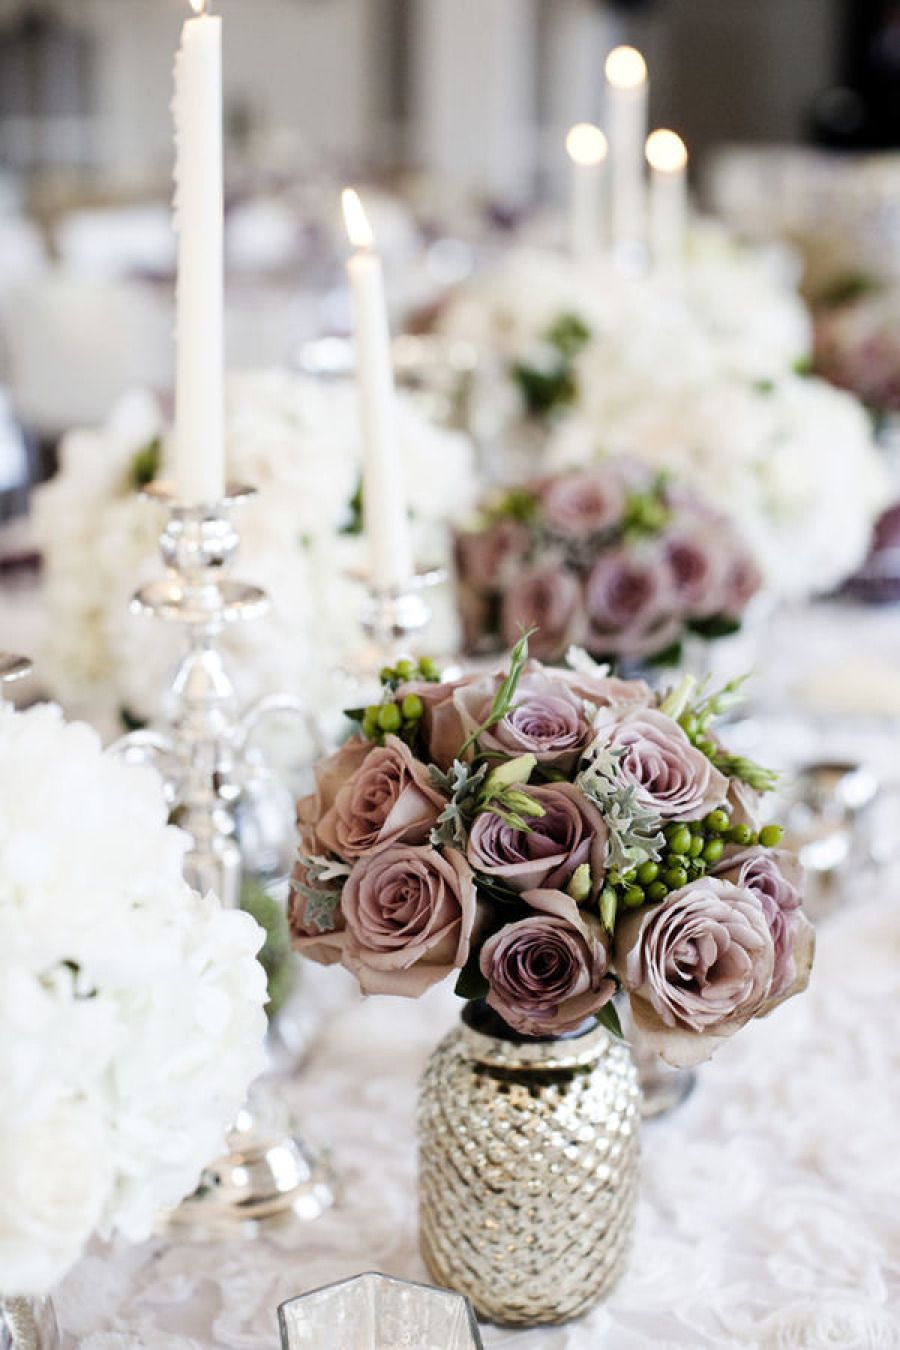 25th wedding decoration ideas   JawDroppingly Beautiful Wedding Centerpieces  Centerpieces